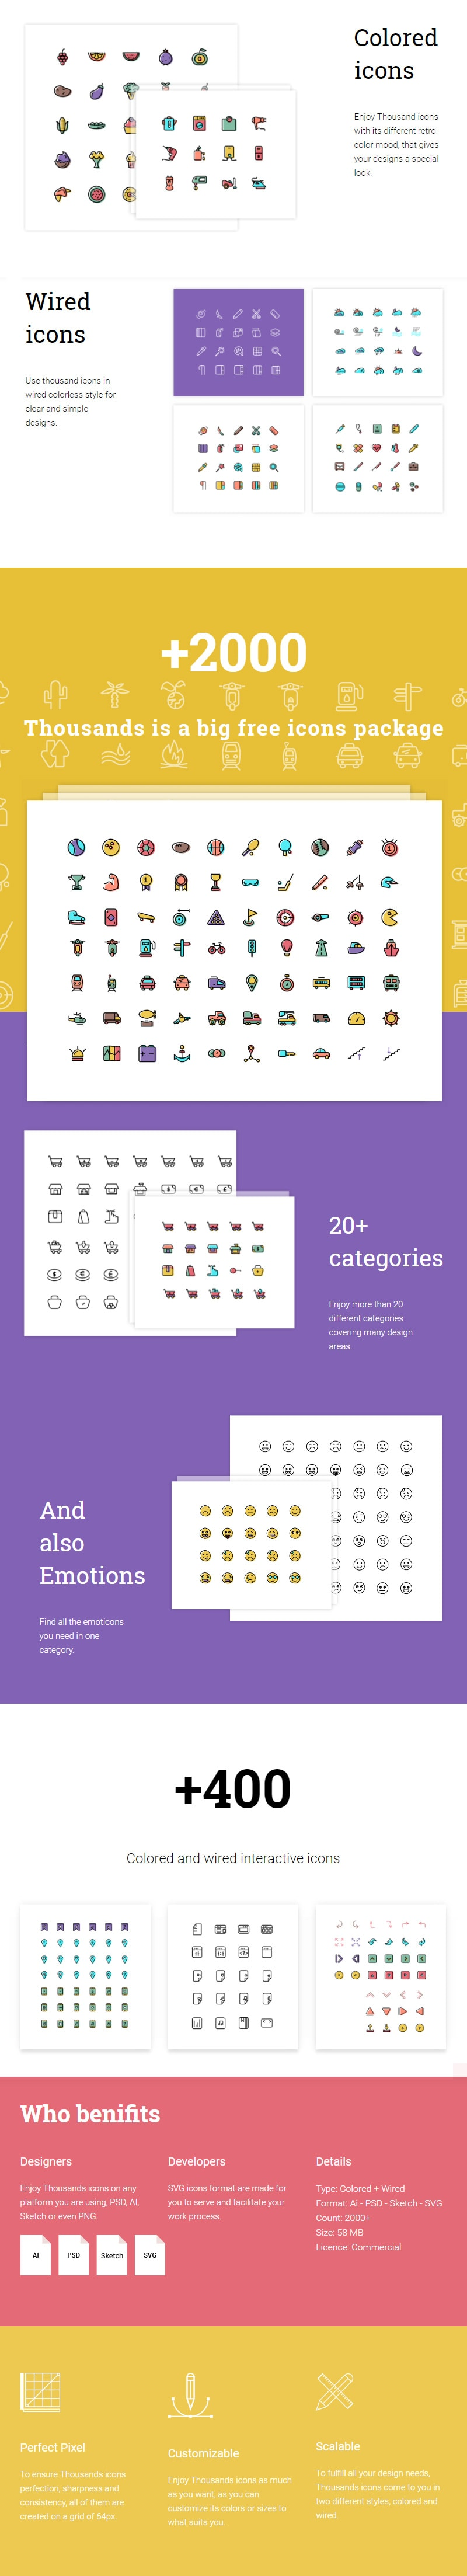 Thousands: 2000 Free Icons